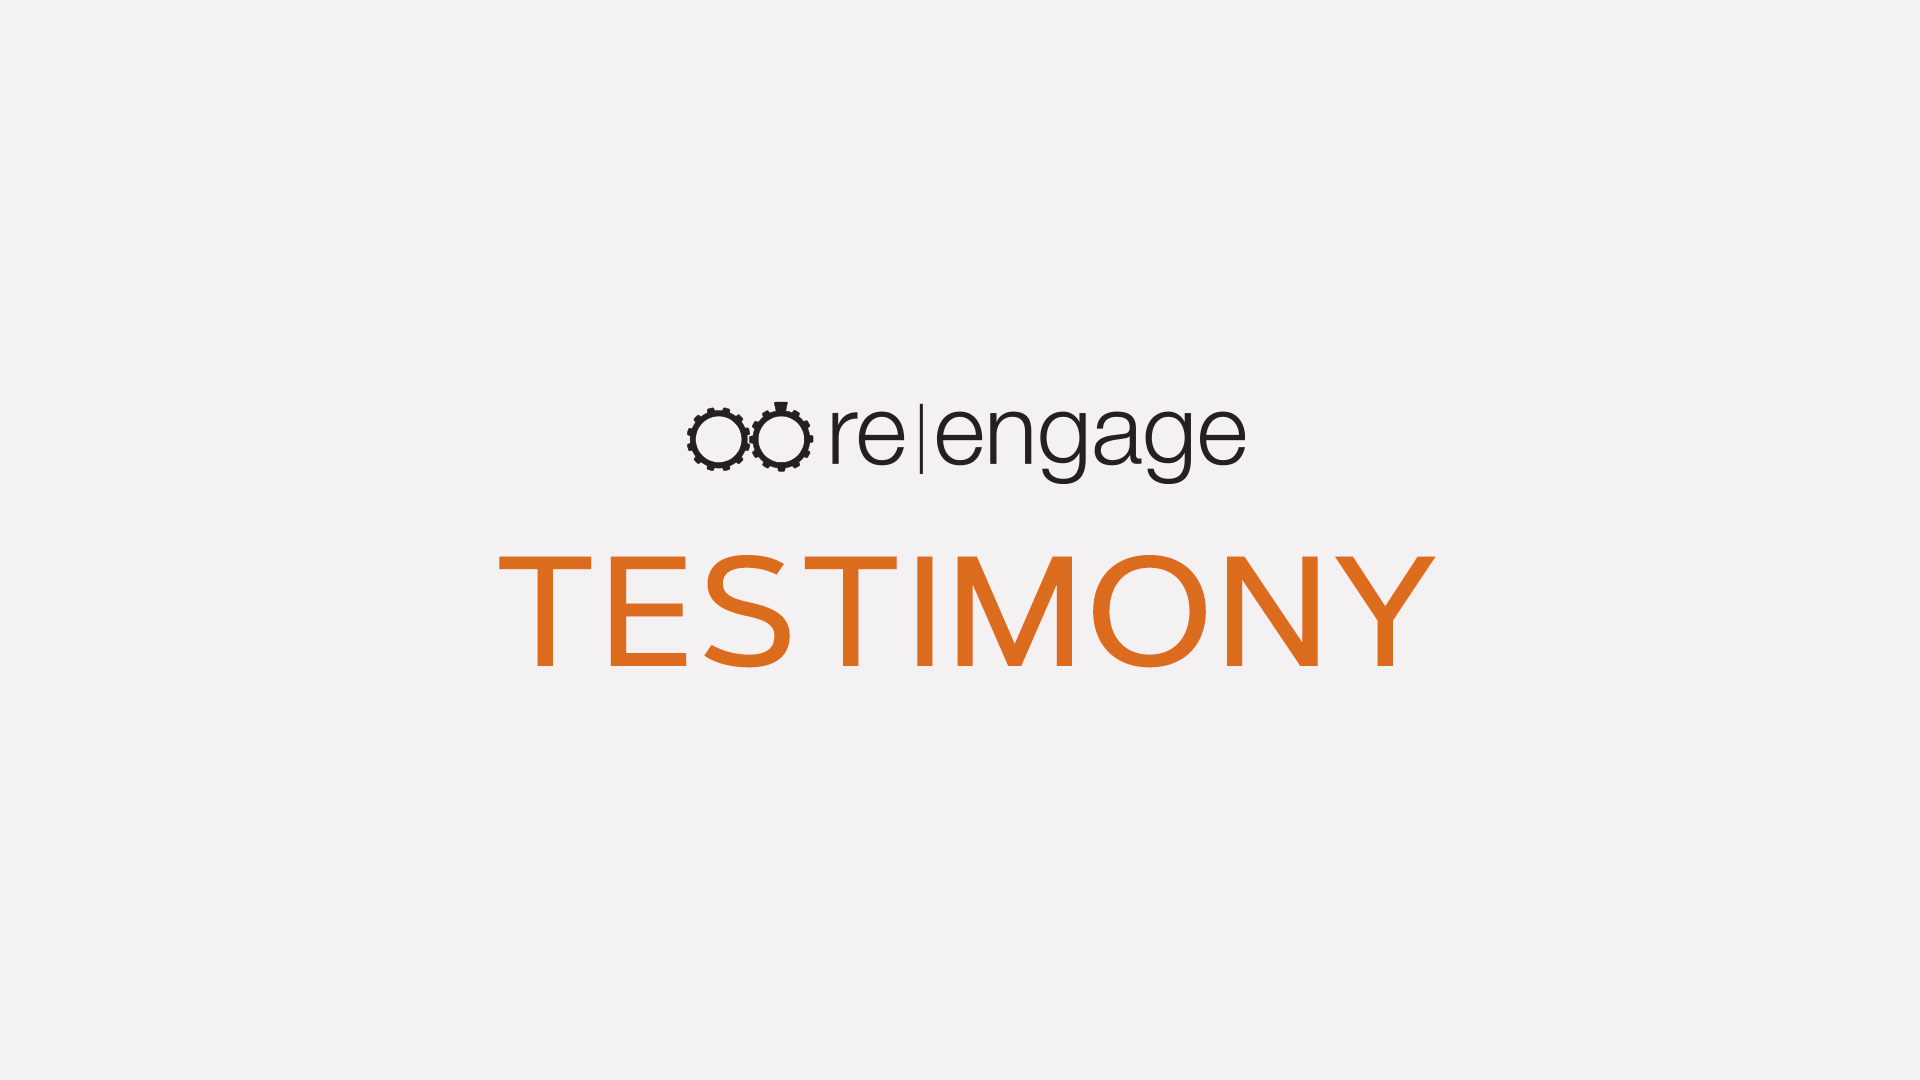 Preston and Lauren Bryan - re|engage Testimony